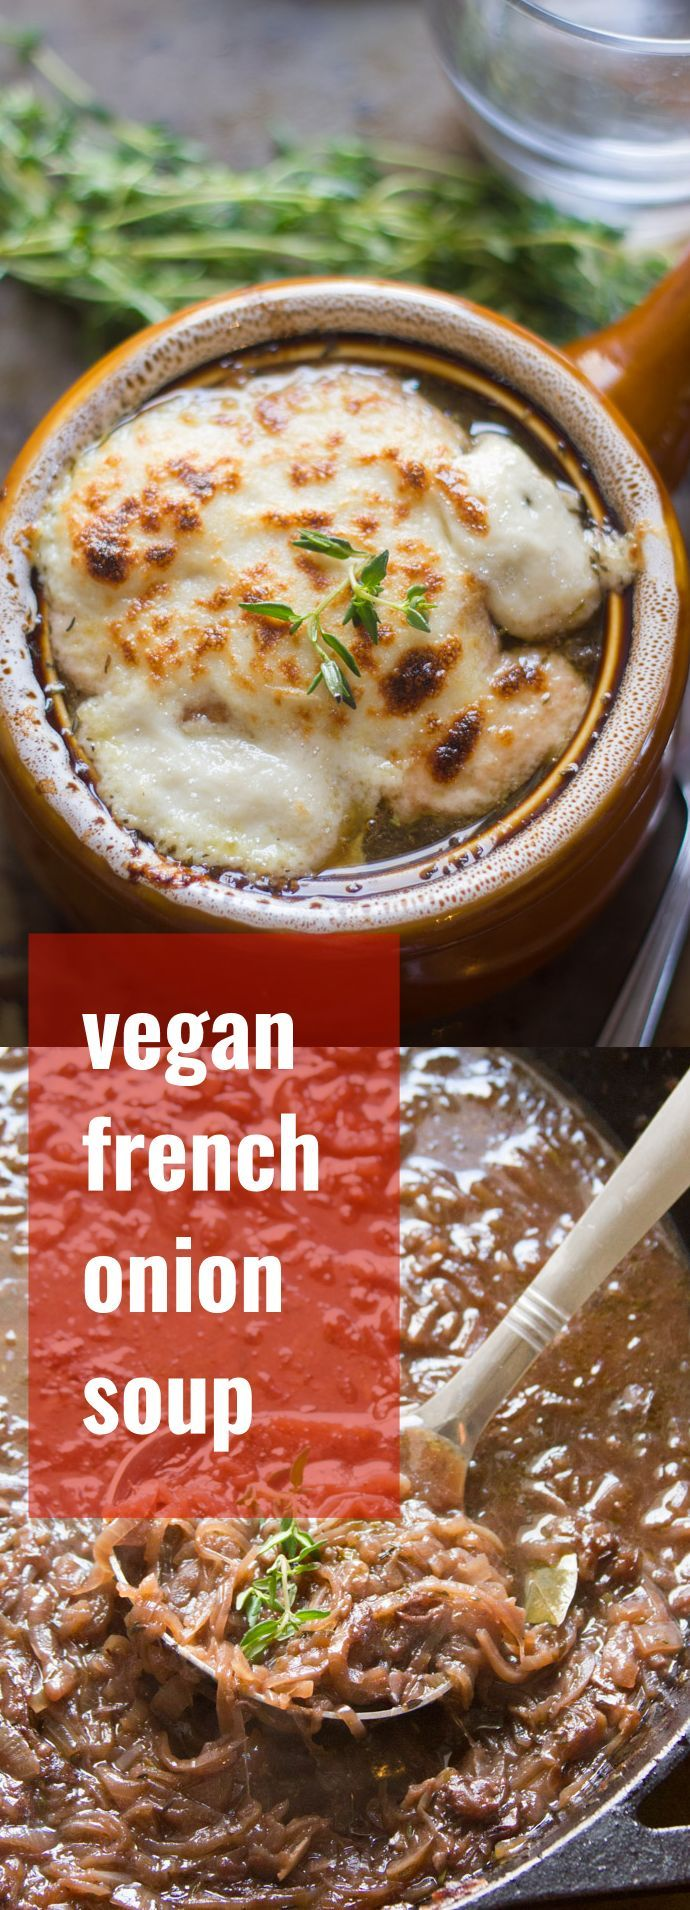 Caramelized onions simmered with herbs and red wine go into this savory vegan French onion soup that's served with toasty croutons topped with gooey cashew cheese.